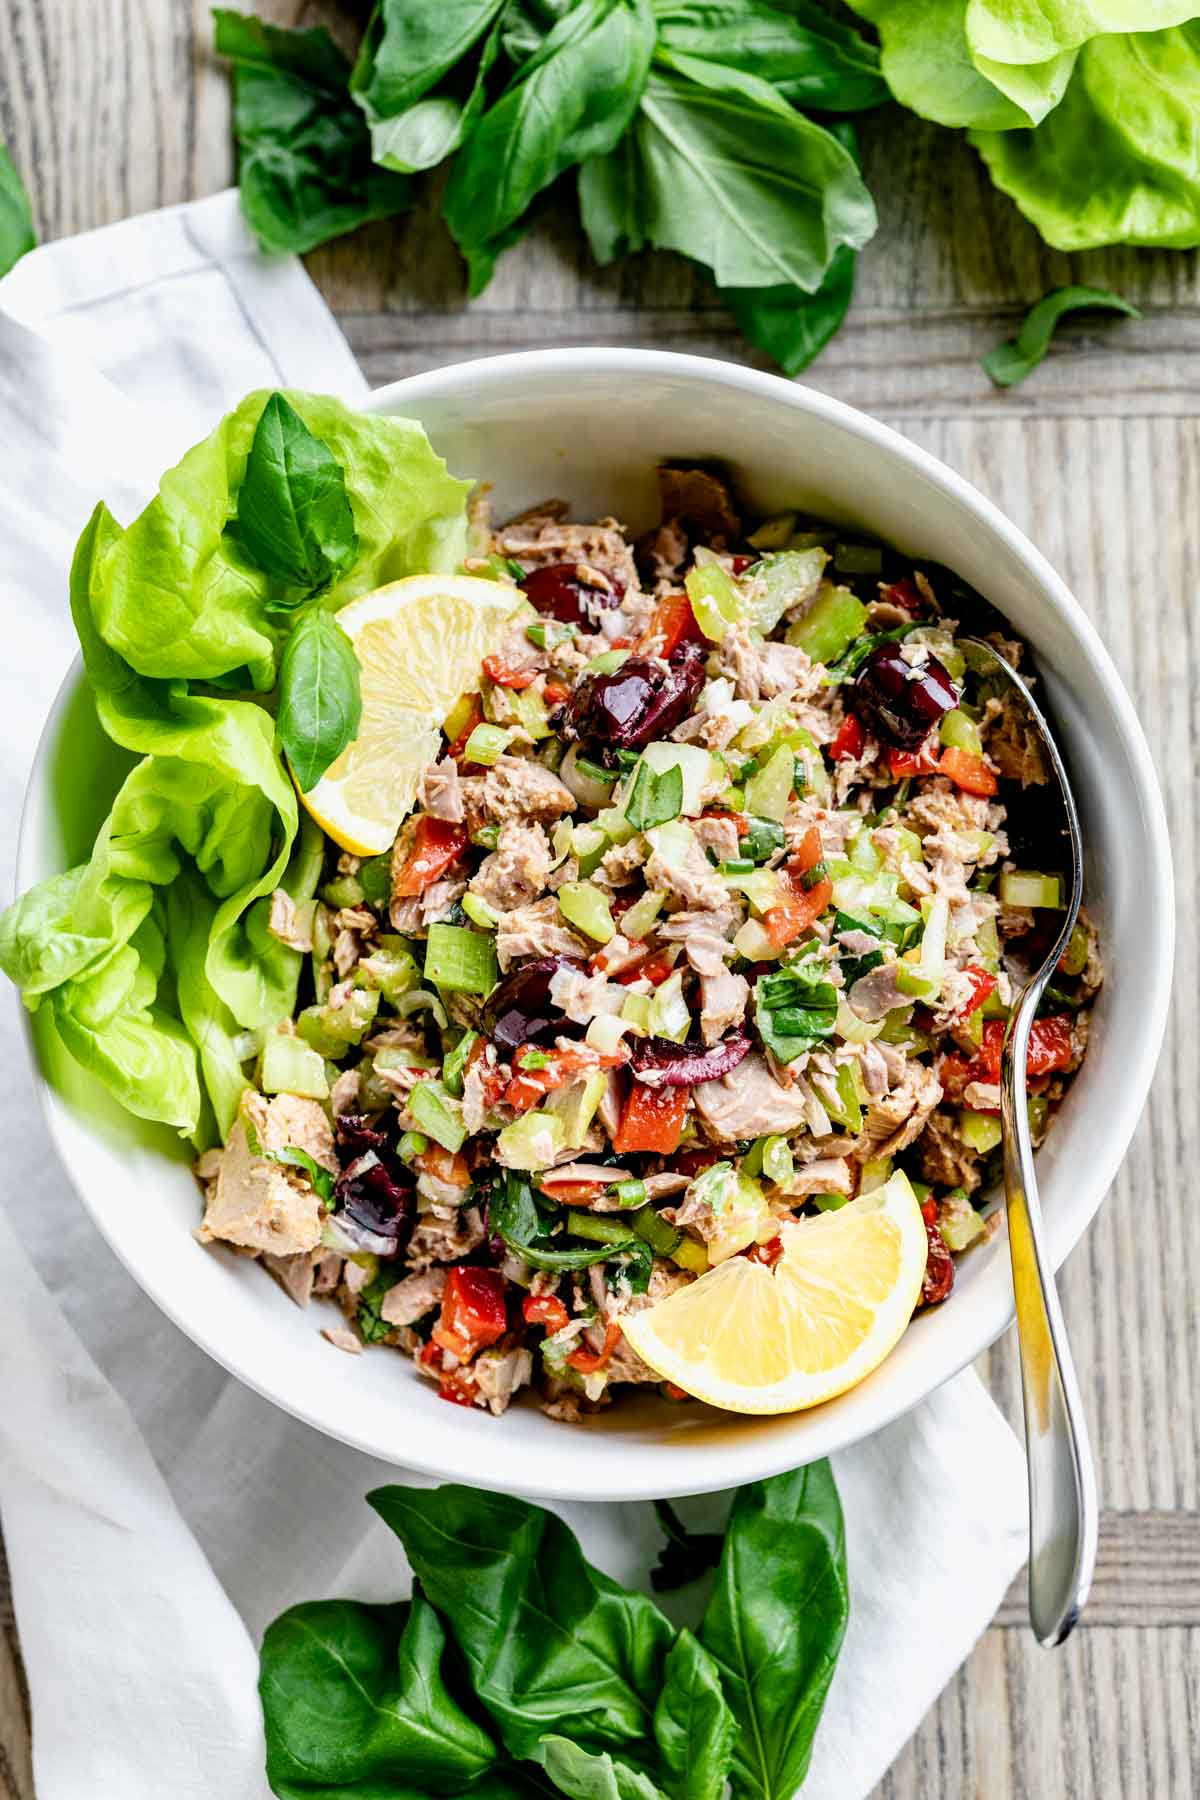 Mediterranean tuna salad in a white bowl with lemon wedges